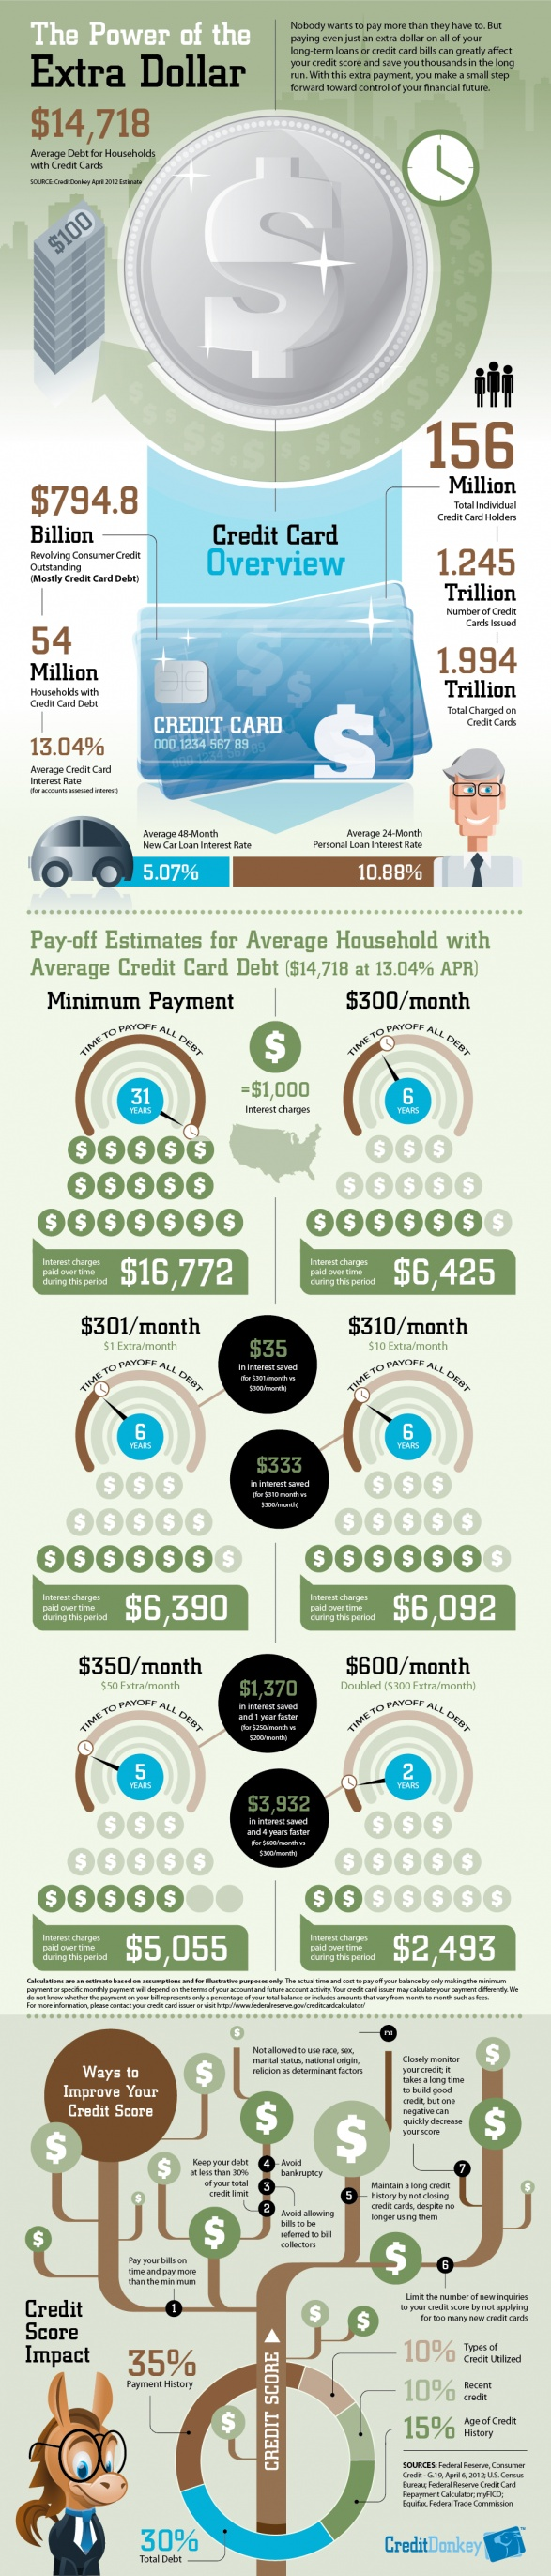 111 best paying down debt images on pinterest freedom money